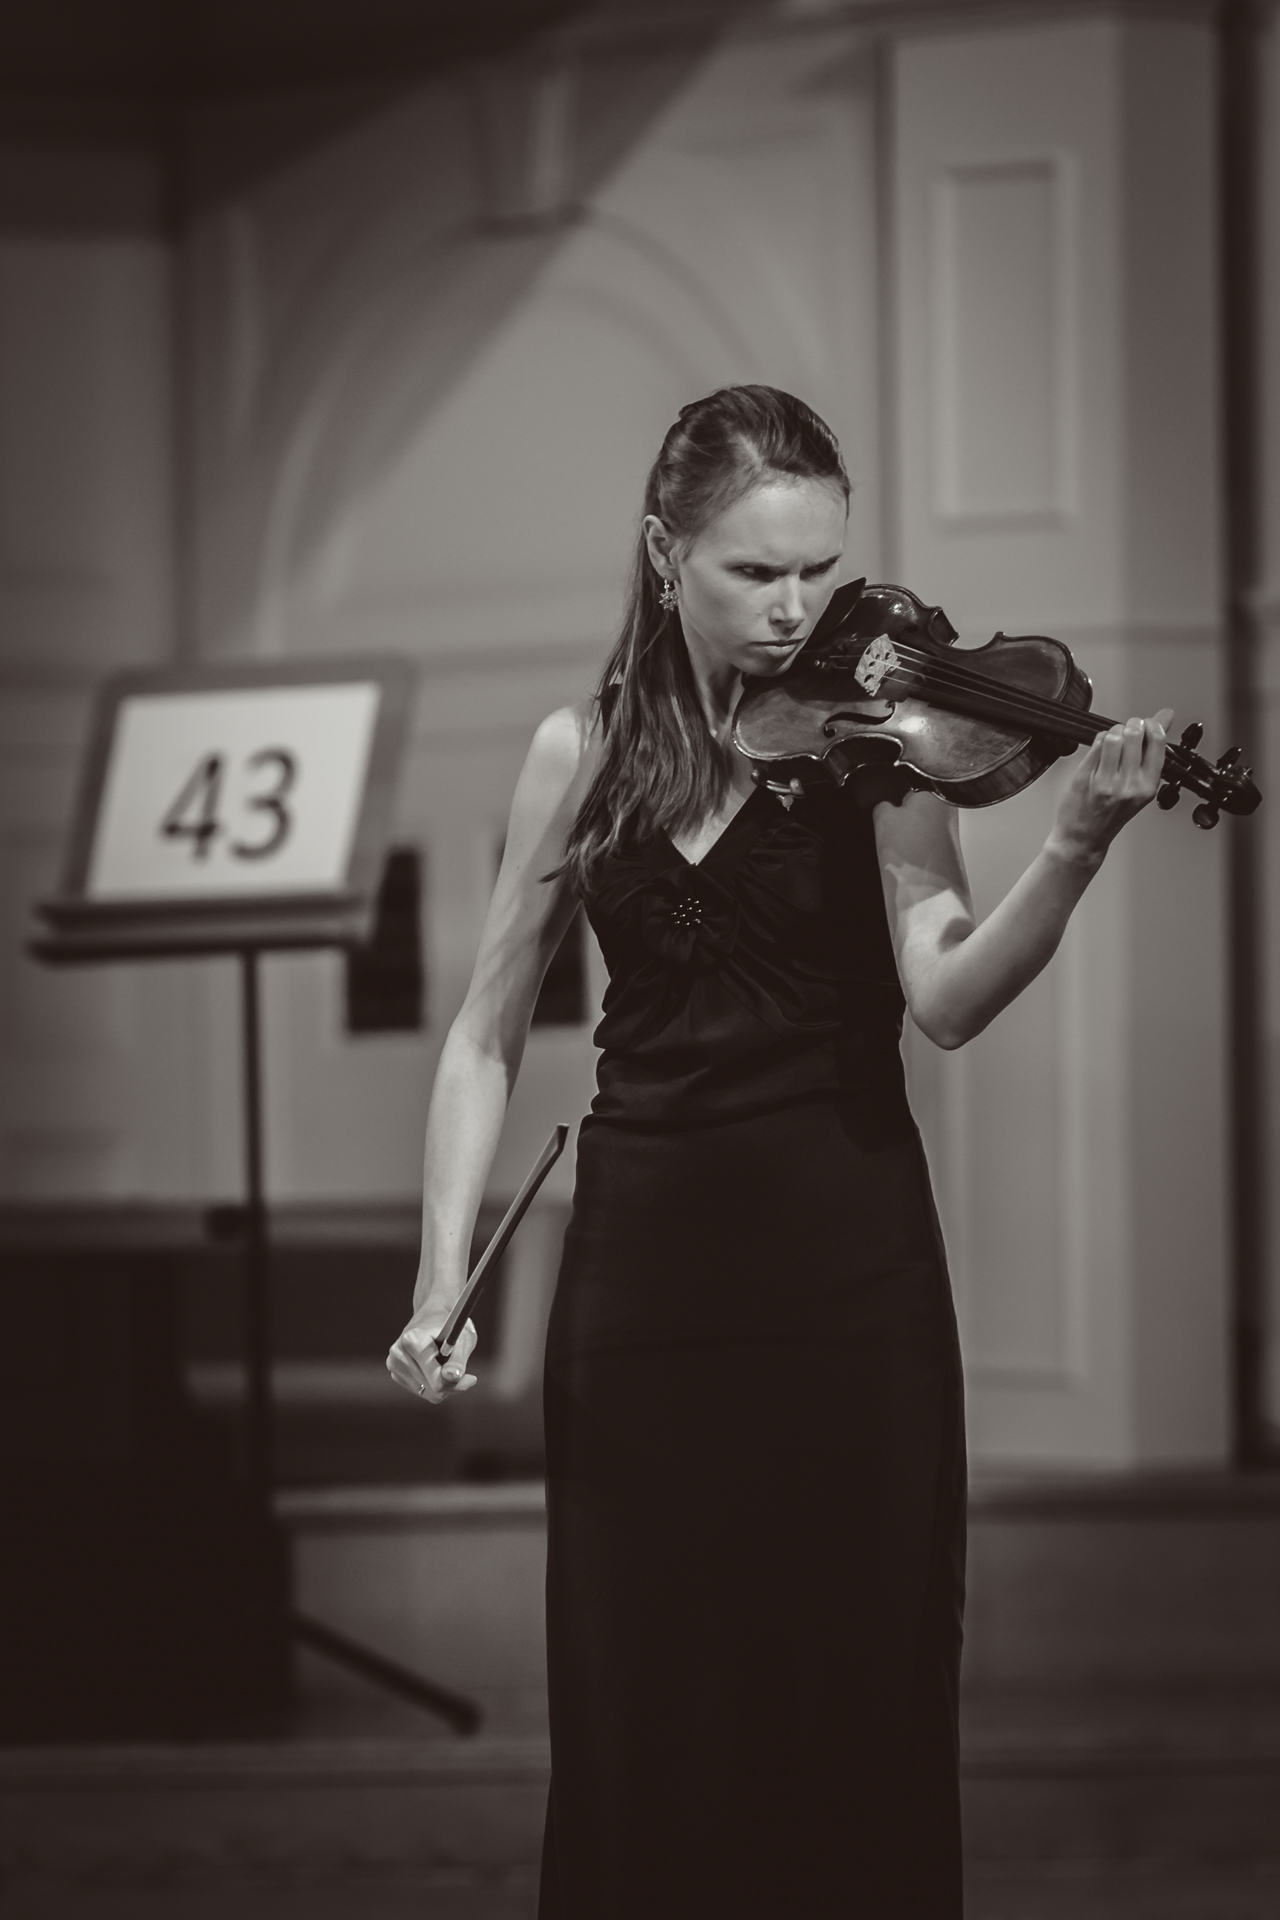 Maja Syrnicka (Poland) - Stage 1 - 15th International H. Wieniawski Violin Competition BINAURAL | use headphones